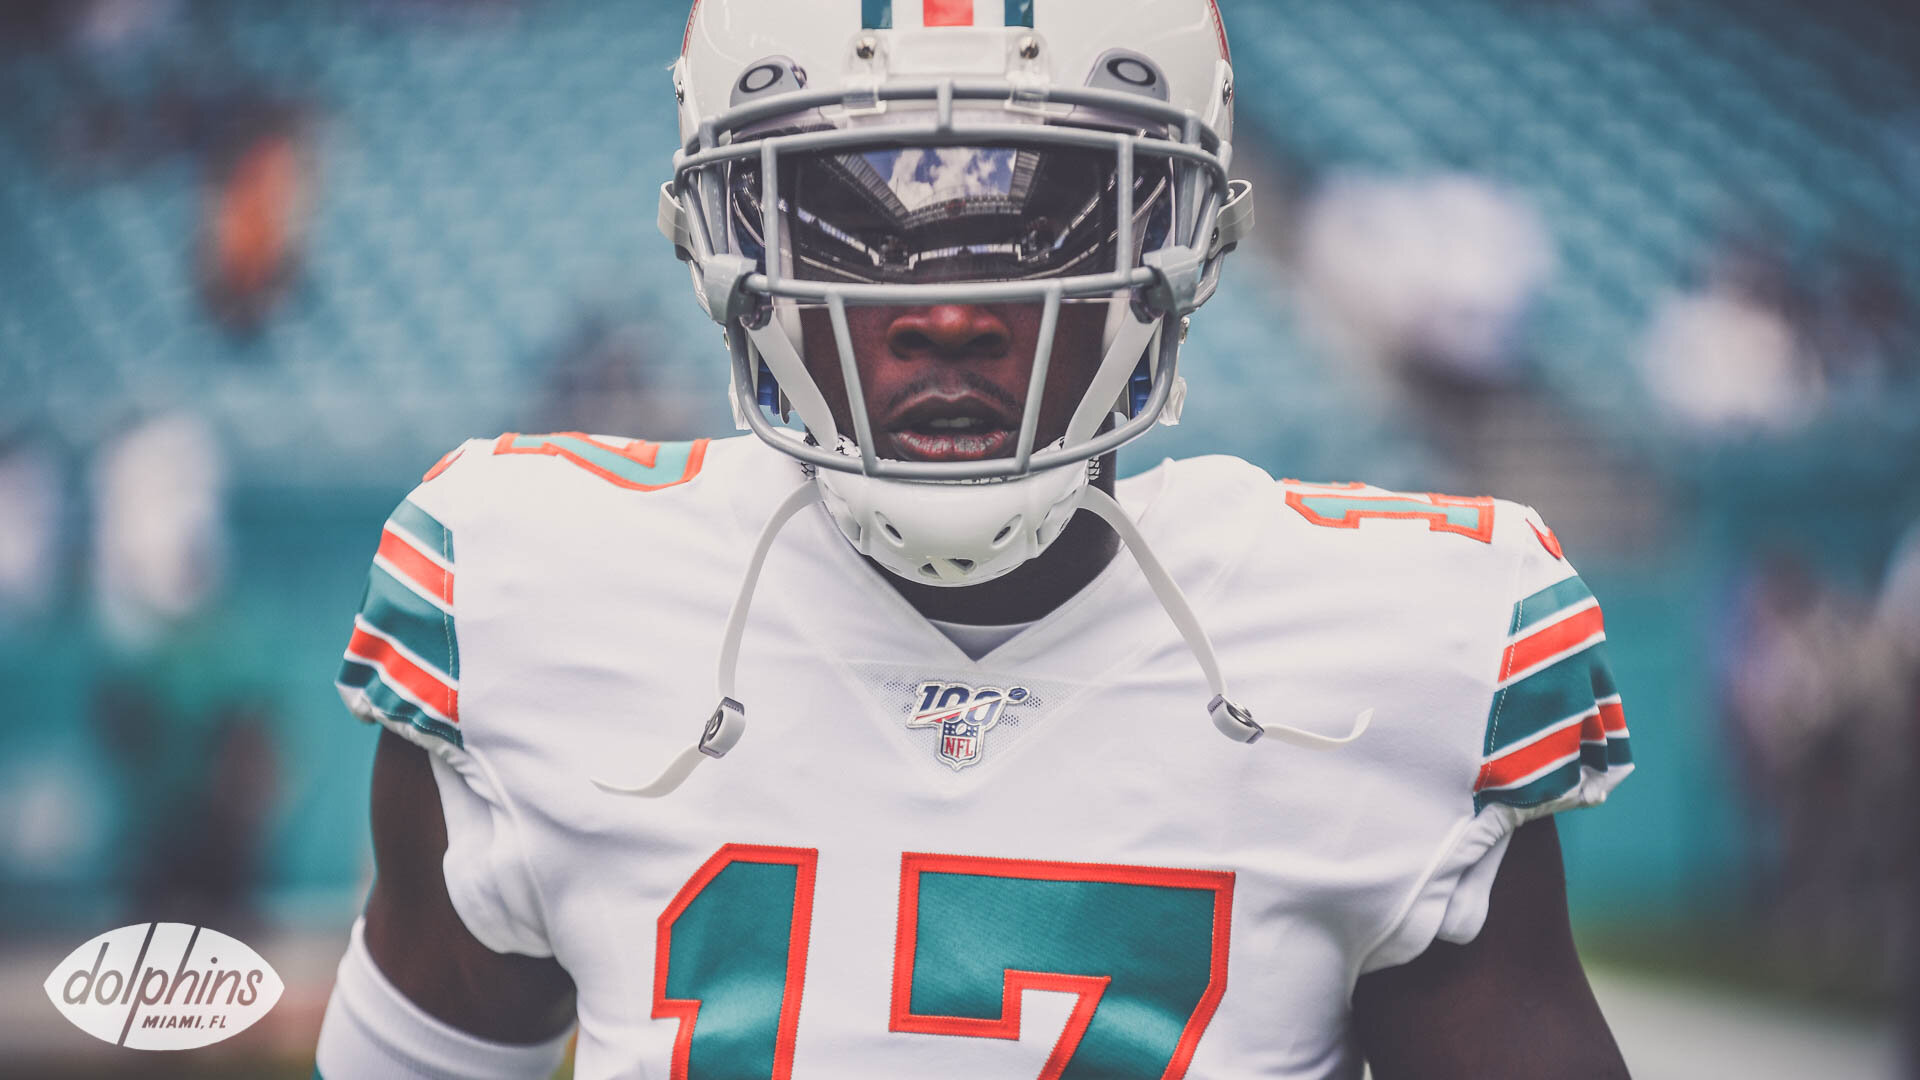 Miami Dolphins New Throwback Uniform